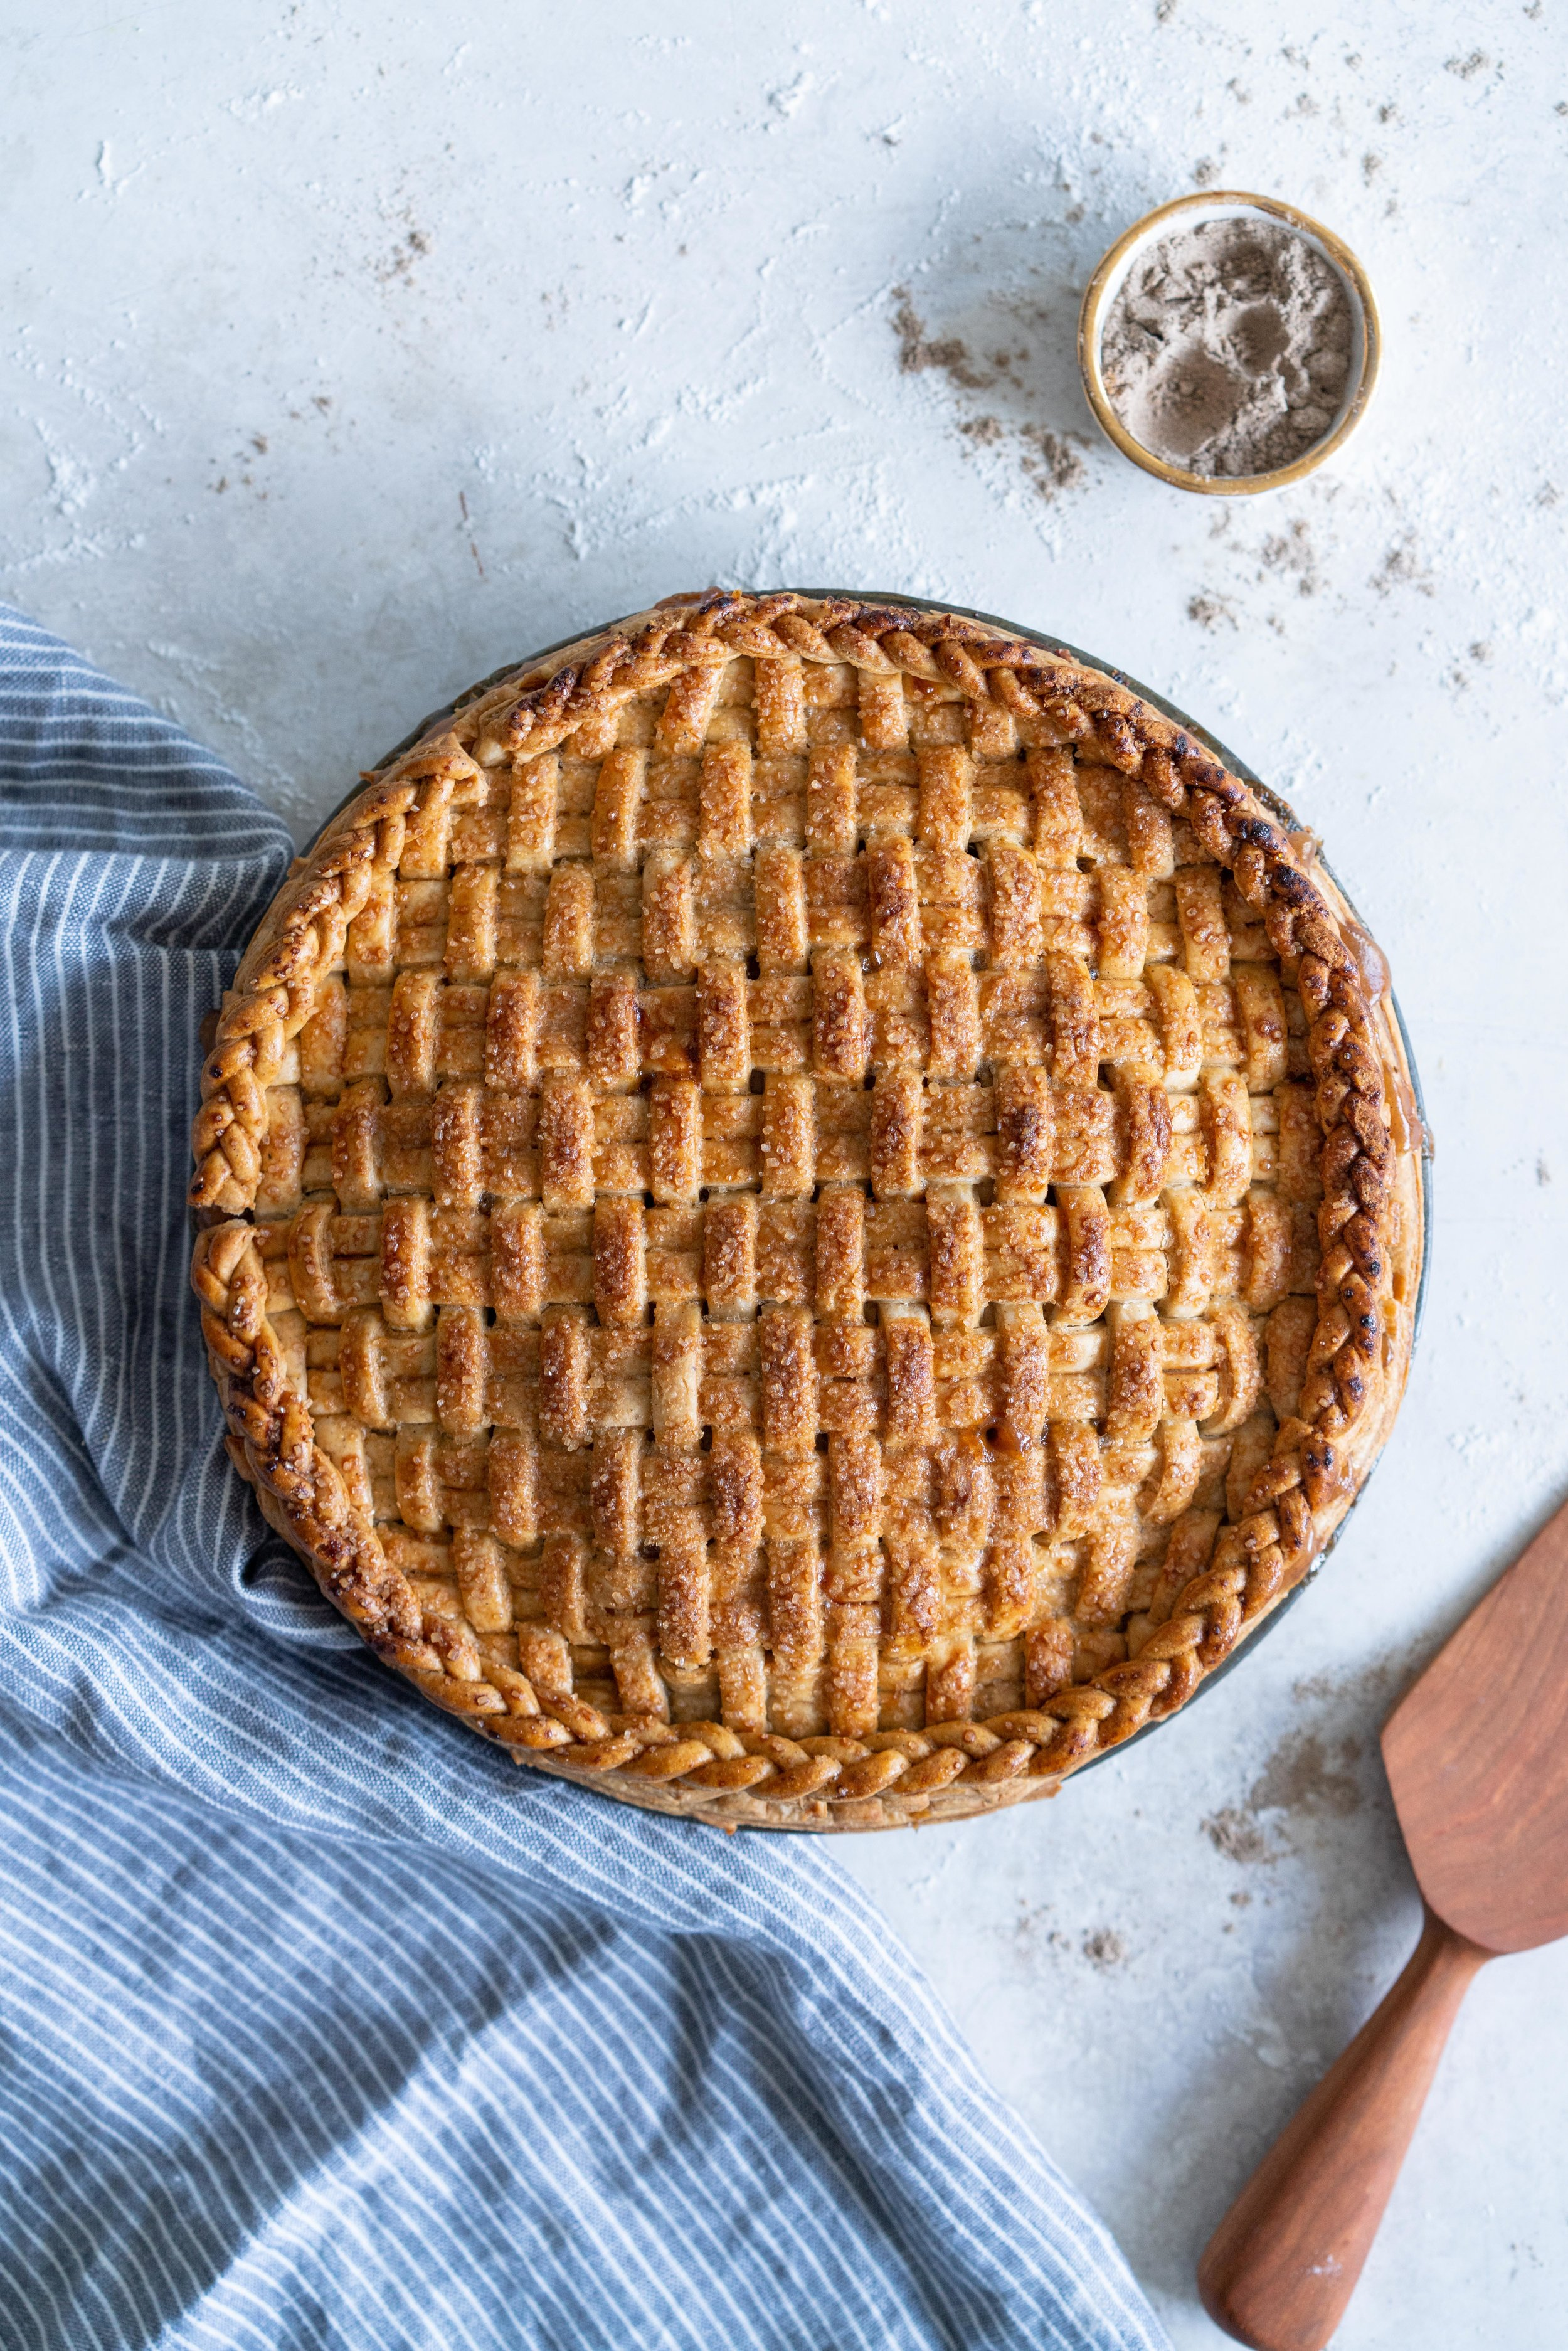 Apple and Cardamom Pie with Cardamom and Vanilla Bean Crust - a pie dough spiked with warming cardamom and fragrant vanilla bean encloses a spiced apple cardamom brown sugar filling. This variation on an apple pie is simple but delicious - it makes the perfect dessert or anytime treat. #cardamom #applepie